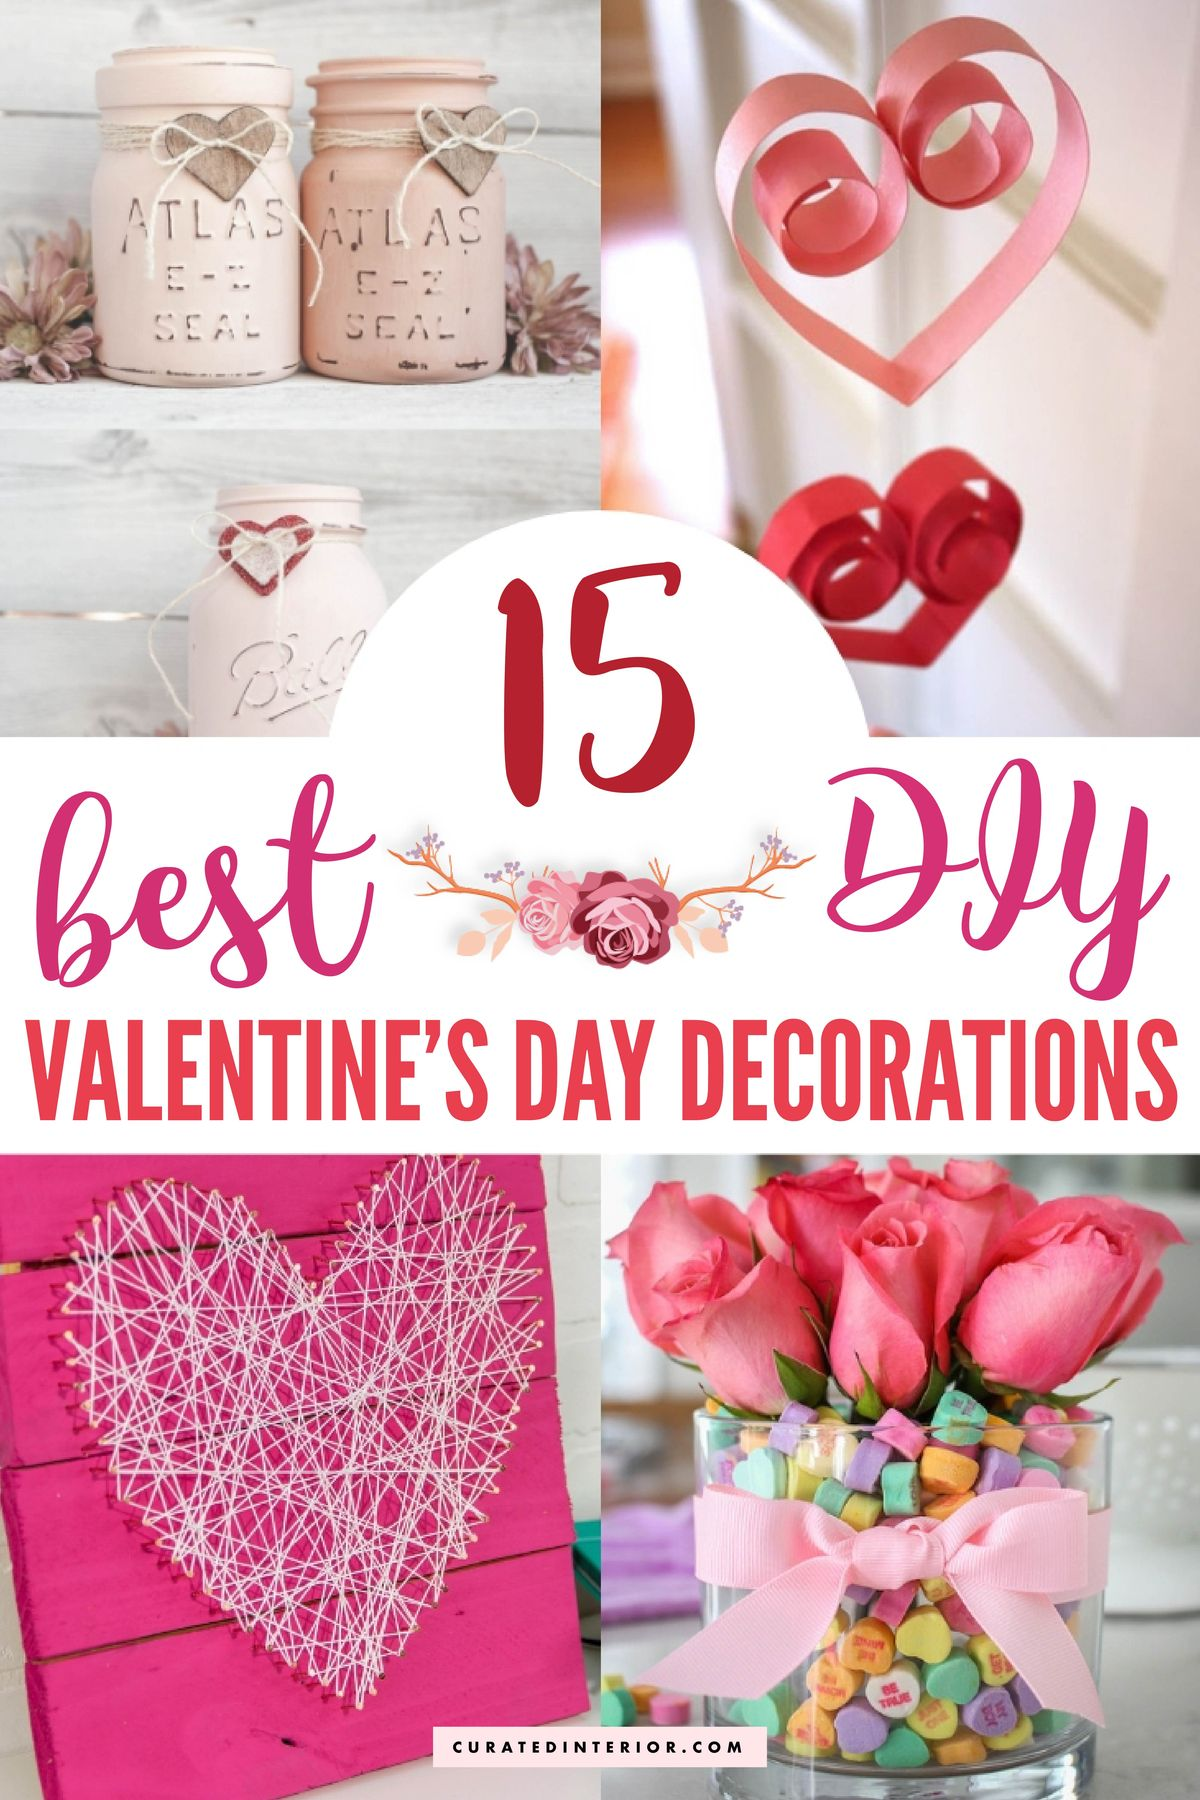 Best DIY Valentine's Day Decorations